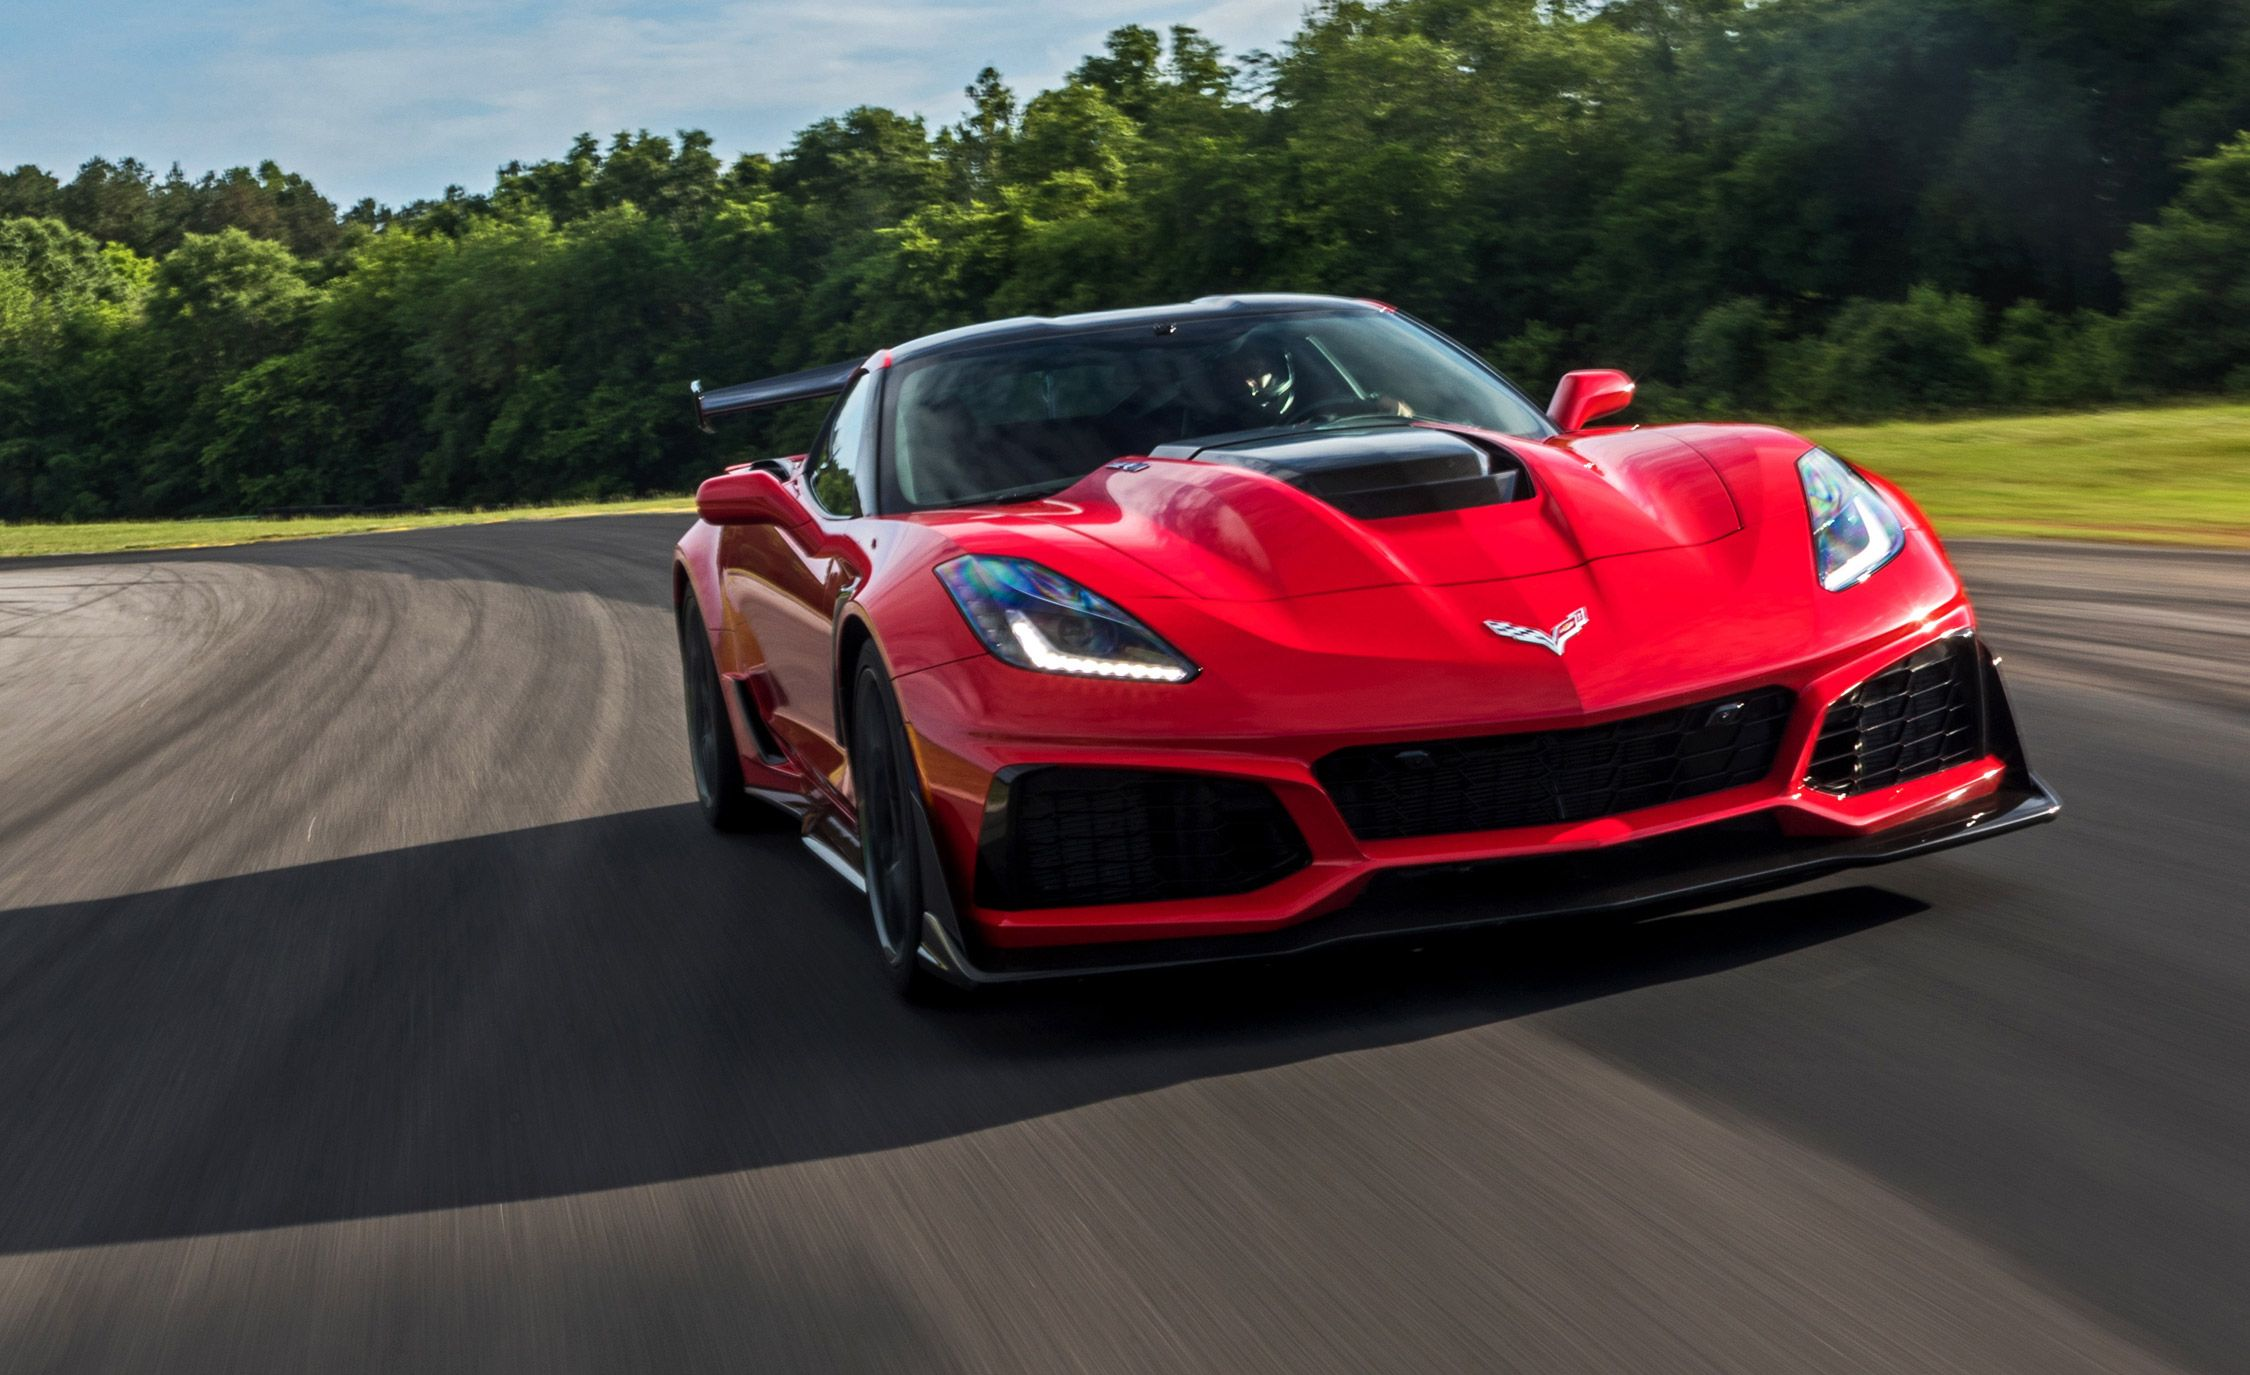 2019 Chevrolet Corvette Zr1 Reviews Price Photos And Specs Car Driver